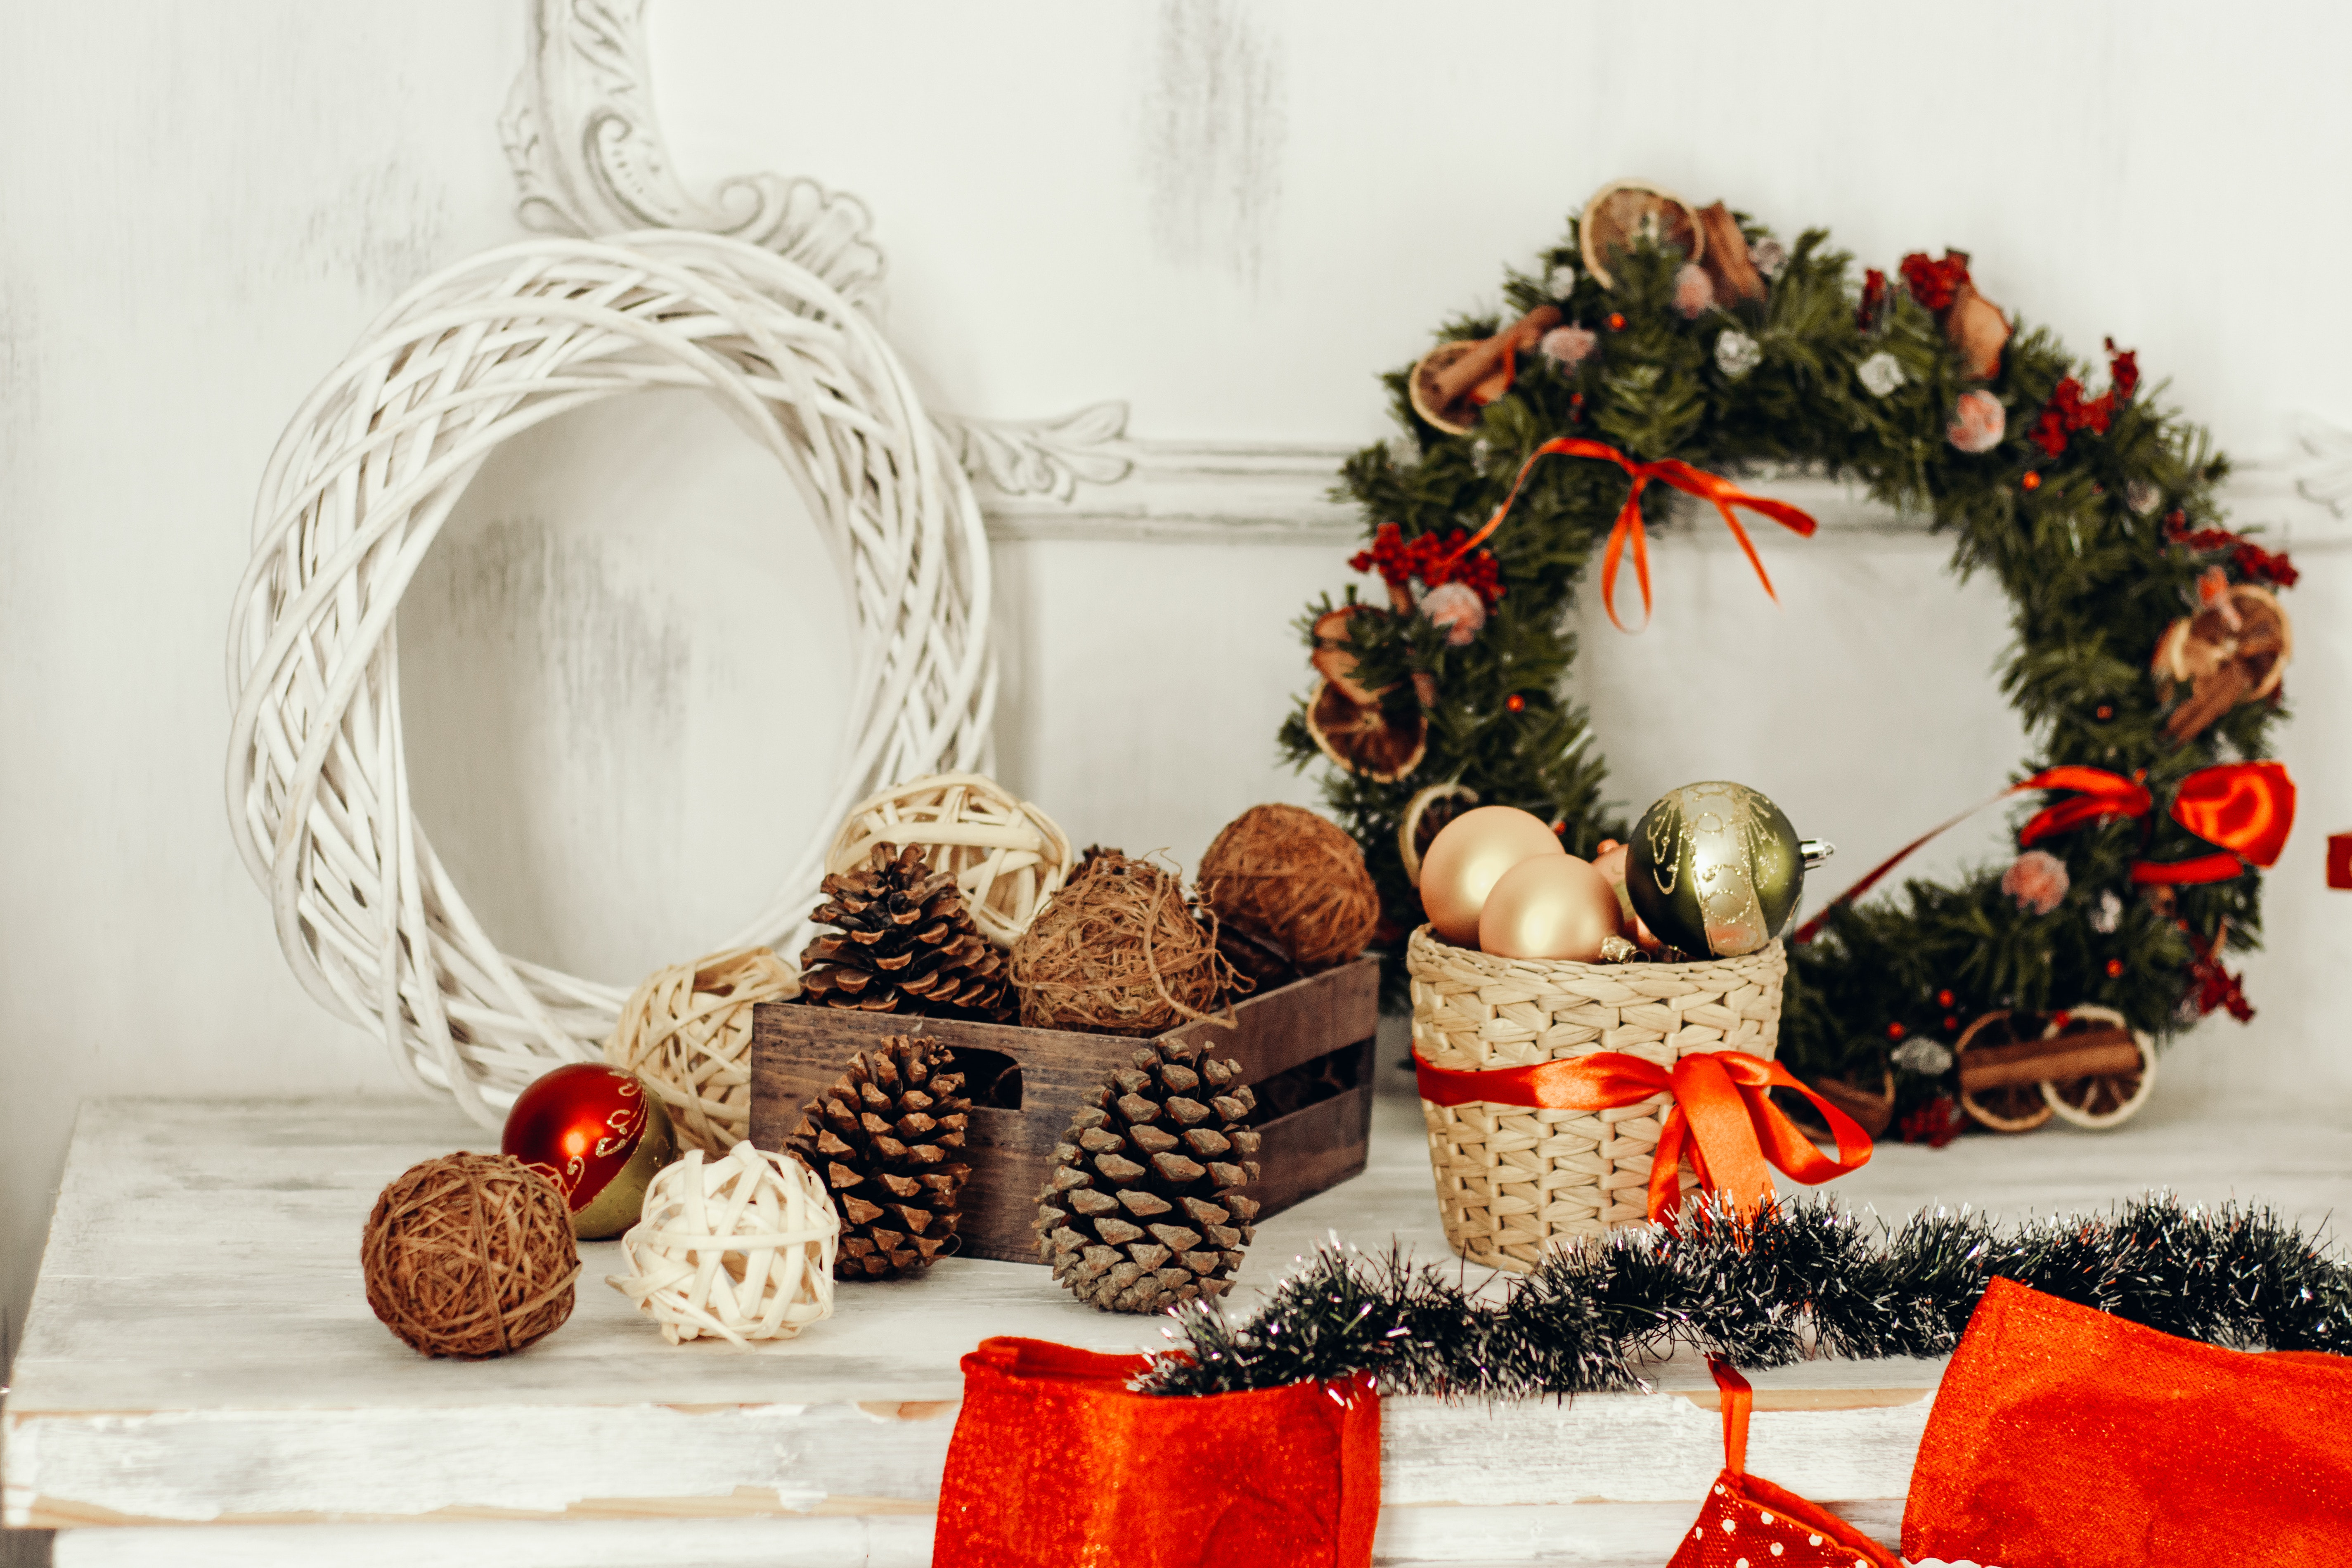 Christmas Decorations On Wooden Table Free Stock Photo